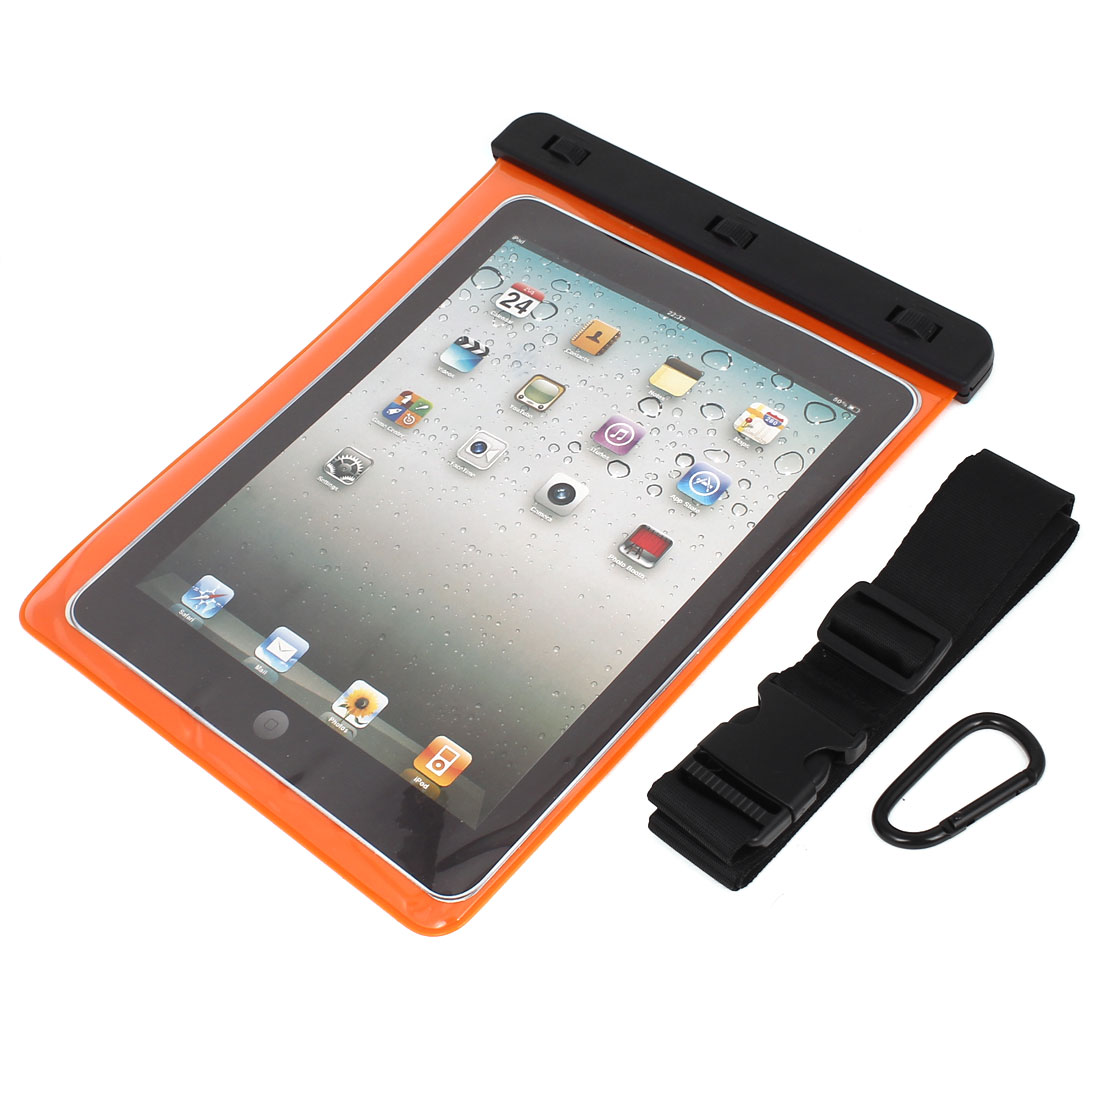 "Waterproof Sleeve Case Bag Cover Orange for 9.7"" 10"" 10.1"" Tablet PC iPad PAD"